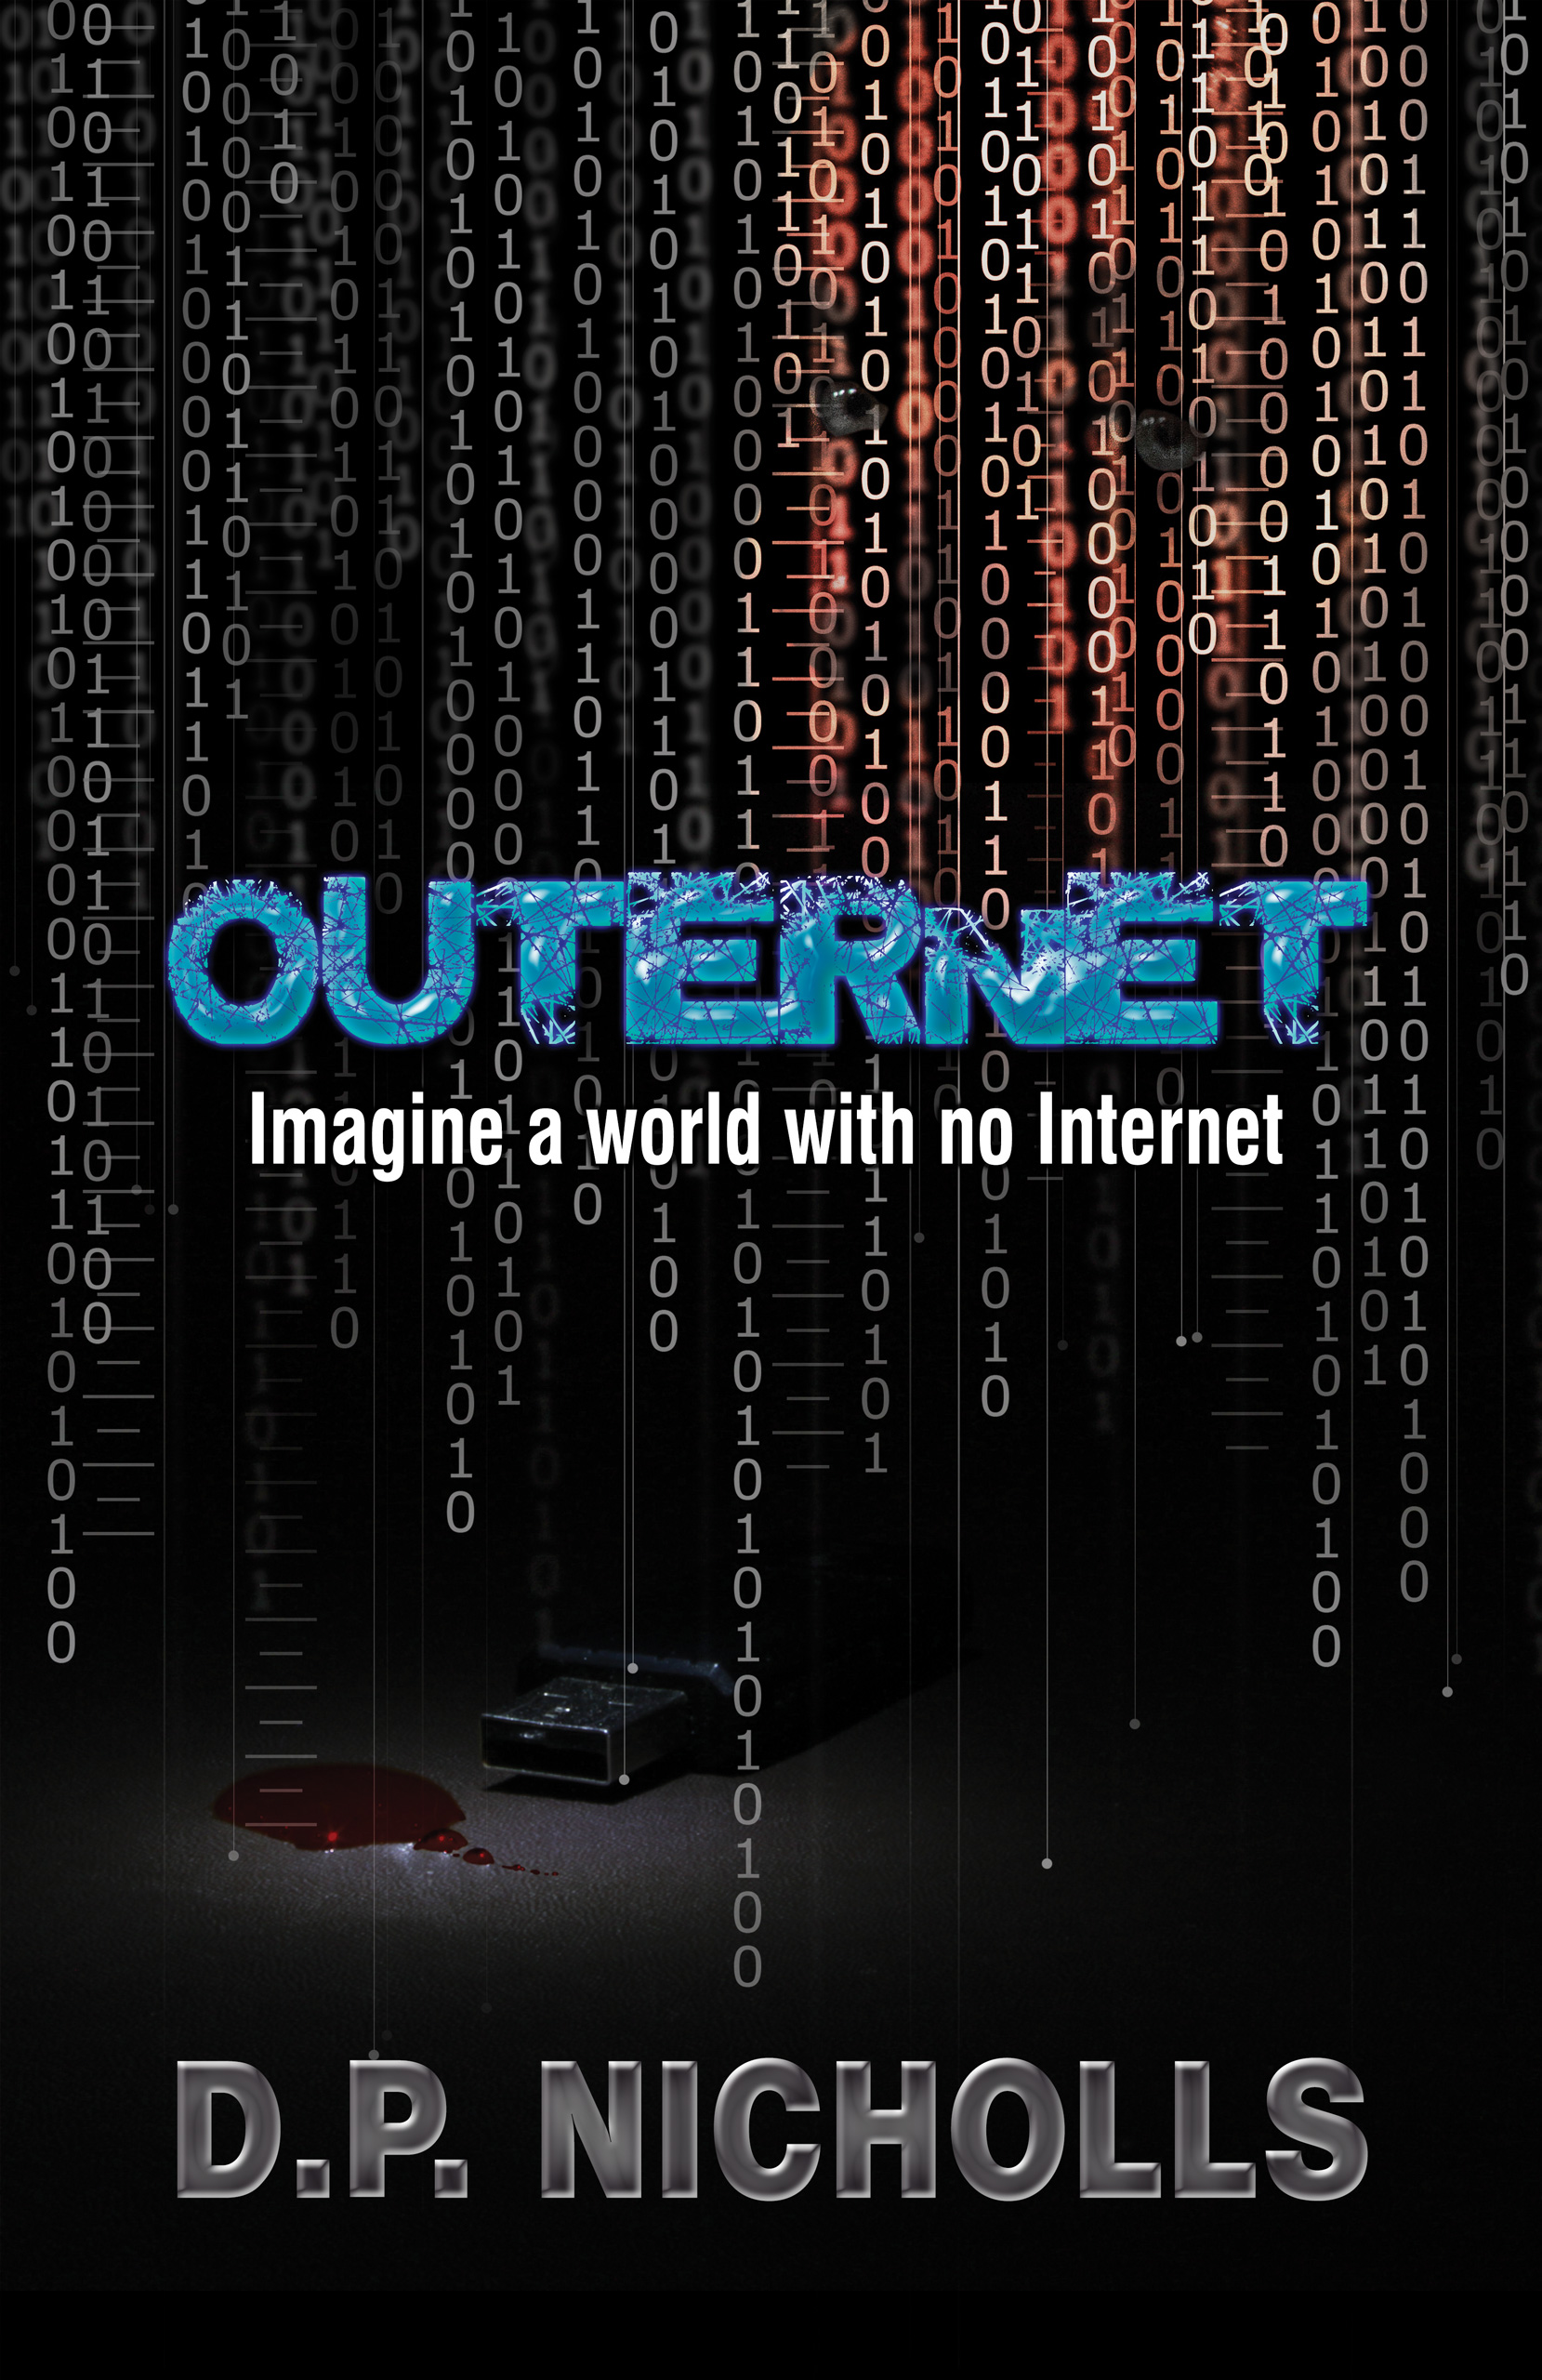 GWL Publishing launches Outernet by D. P. Nicholls